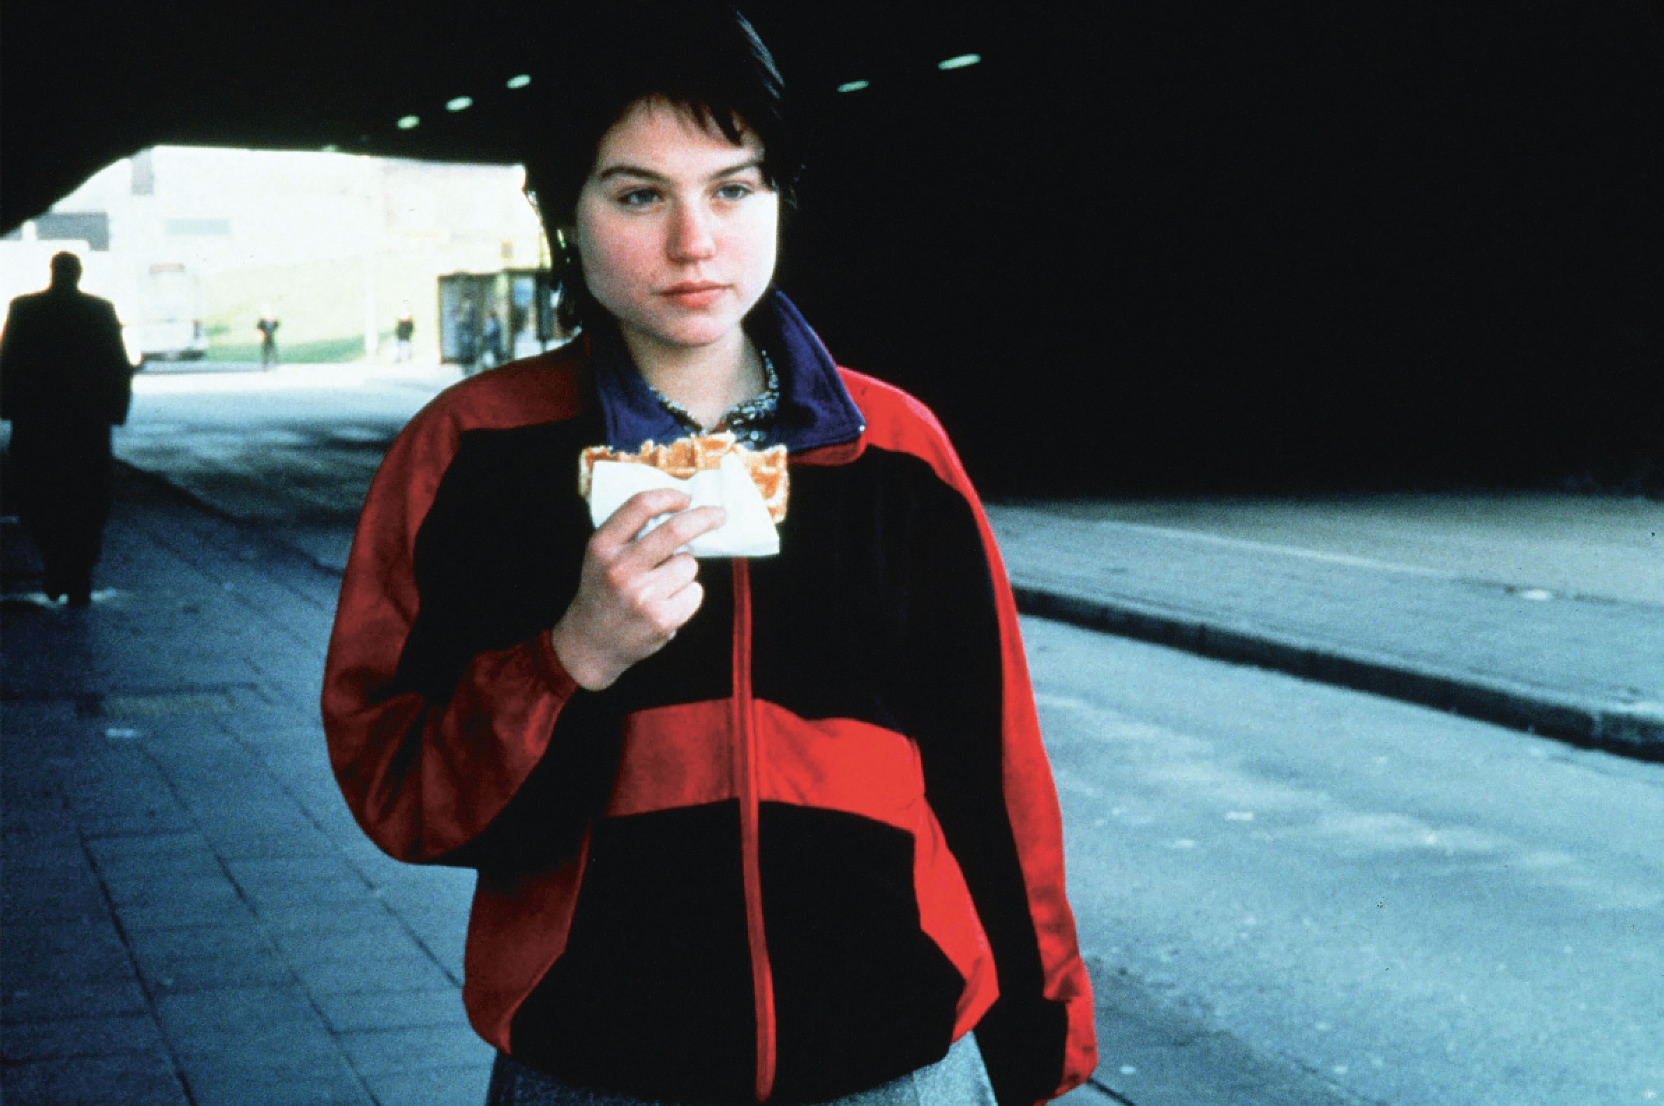 Still from Rosetta (1999), directed by Jean-Pierre and Luc Dardenne. Courtesy of ARP Sélection, Paris